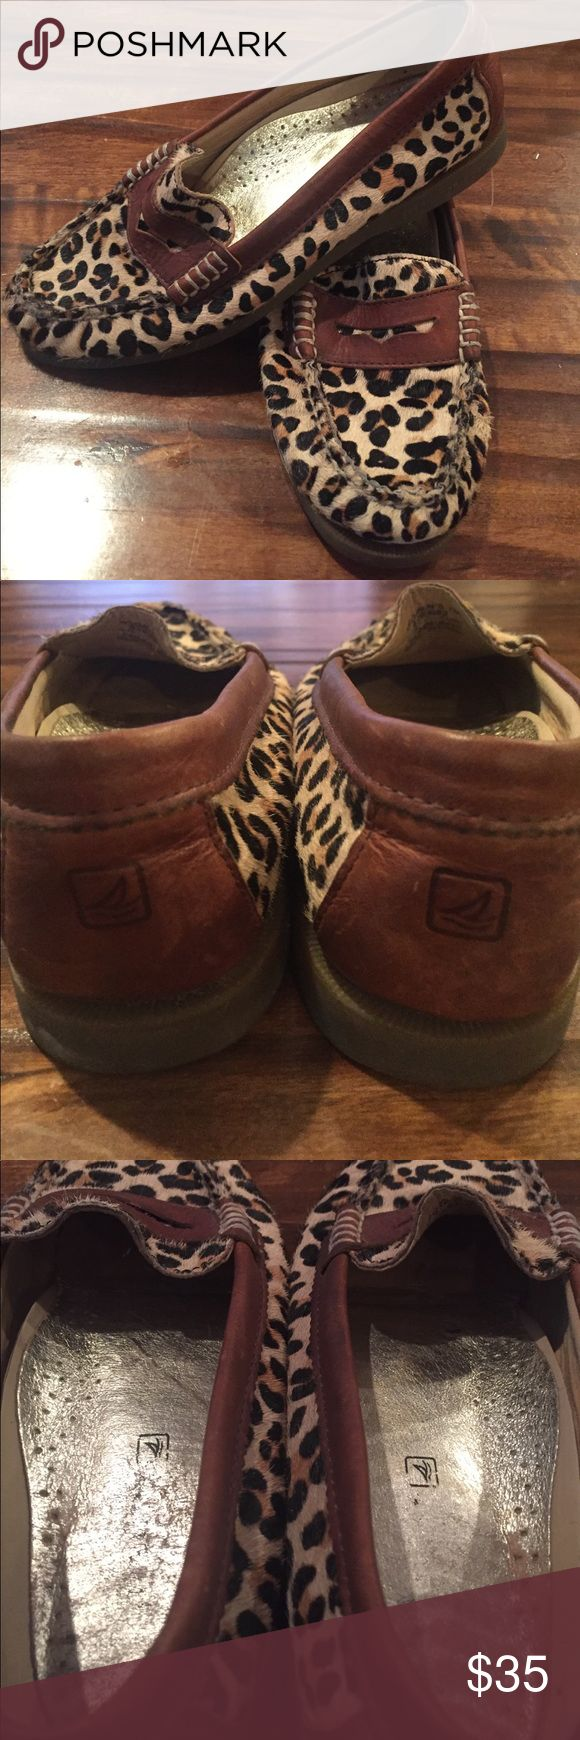 Leopard Sperry Flats Good used condition. Size 7 Sperry Leopard Flats. Sperry Shoes Flats & Loafers